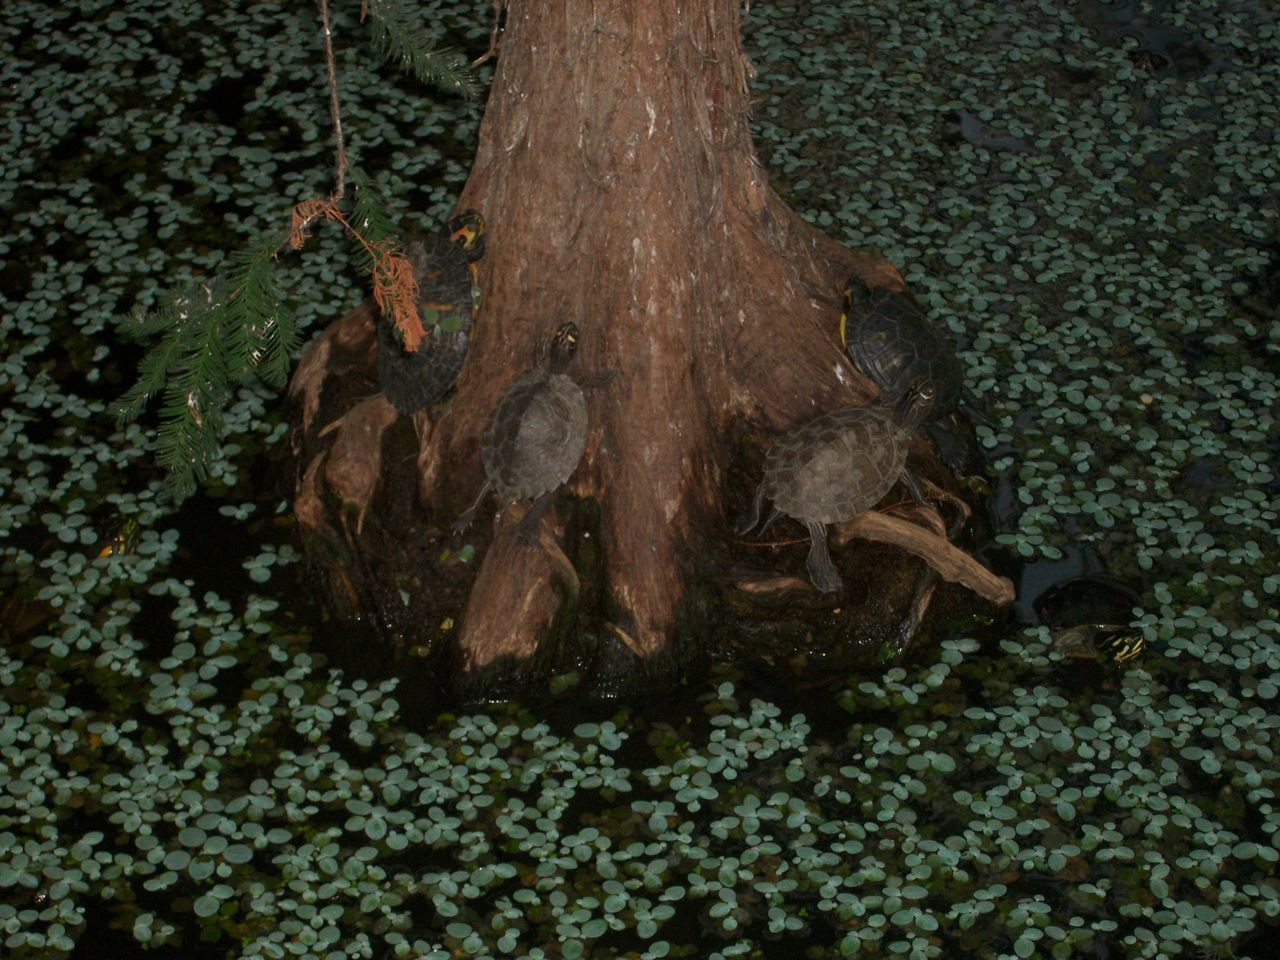 Atocha Train Station Atocha Beauty In Nature Close-up Indoor Nature No People Tree Tree Trunk Turtle